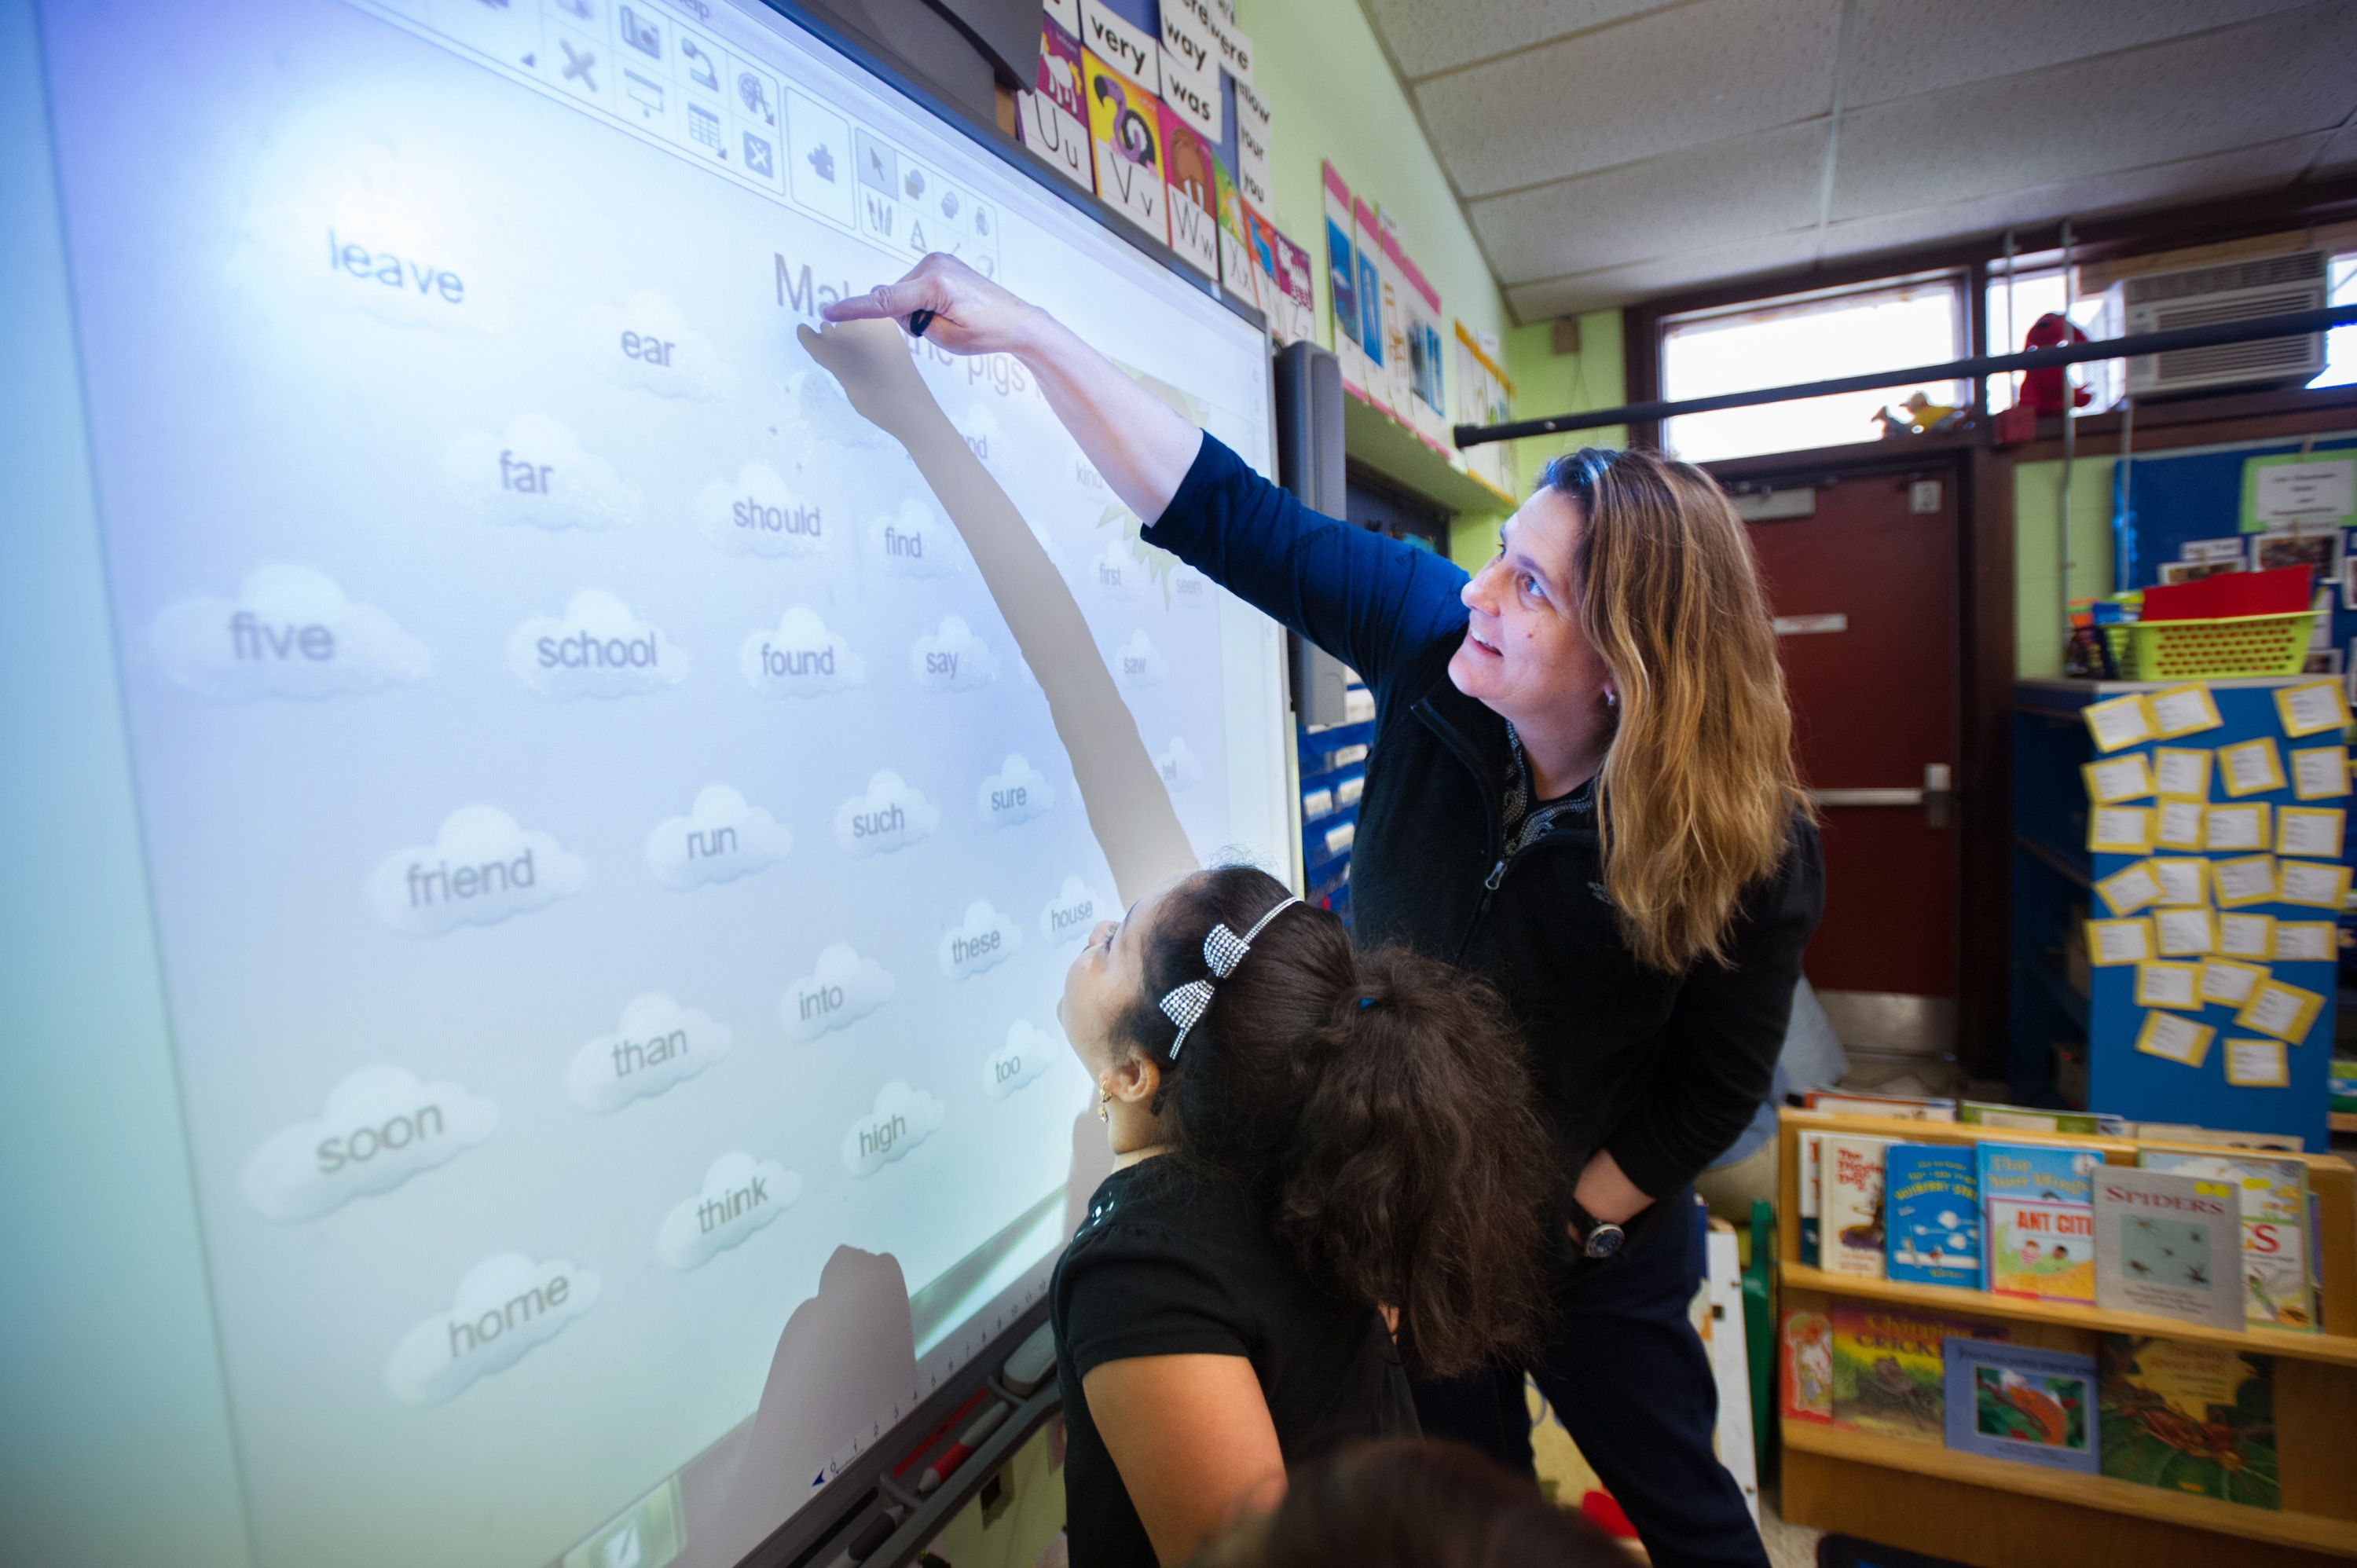 In the past four years, Principal Gara Field has done more than boost morale to turn around an urban elementary school that has struggled for years with leadership churn and low test scores.